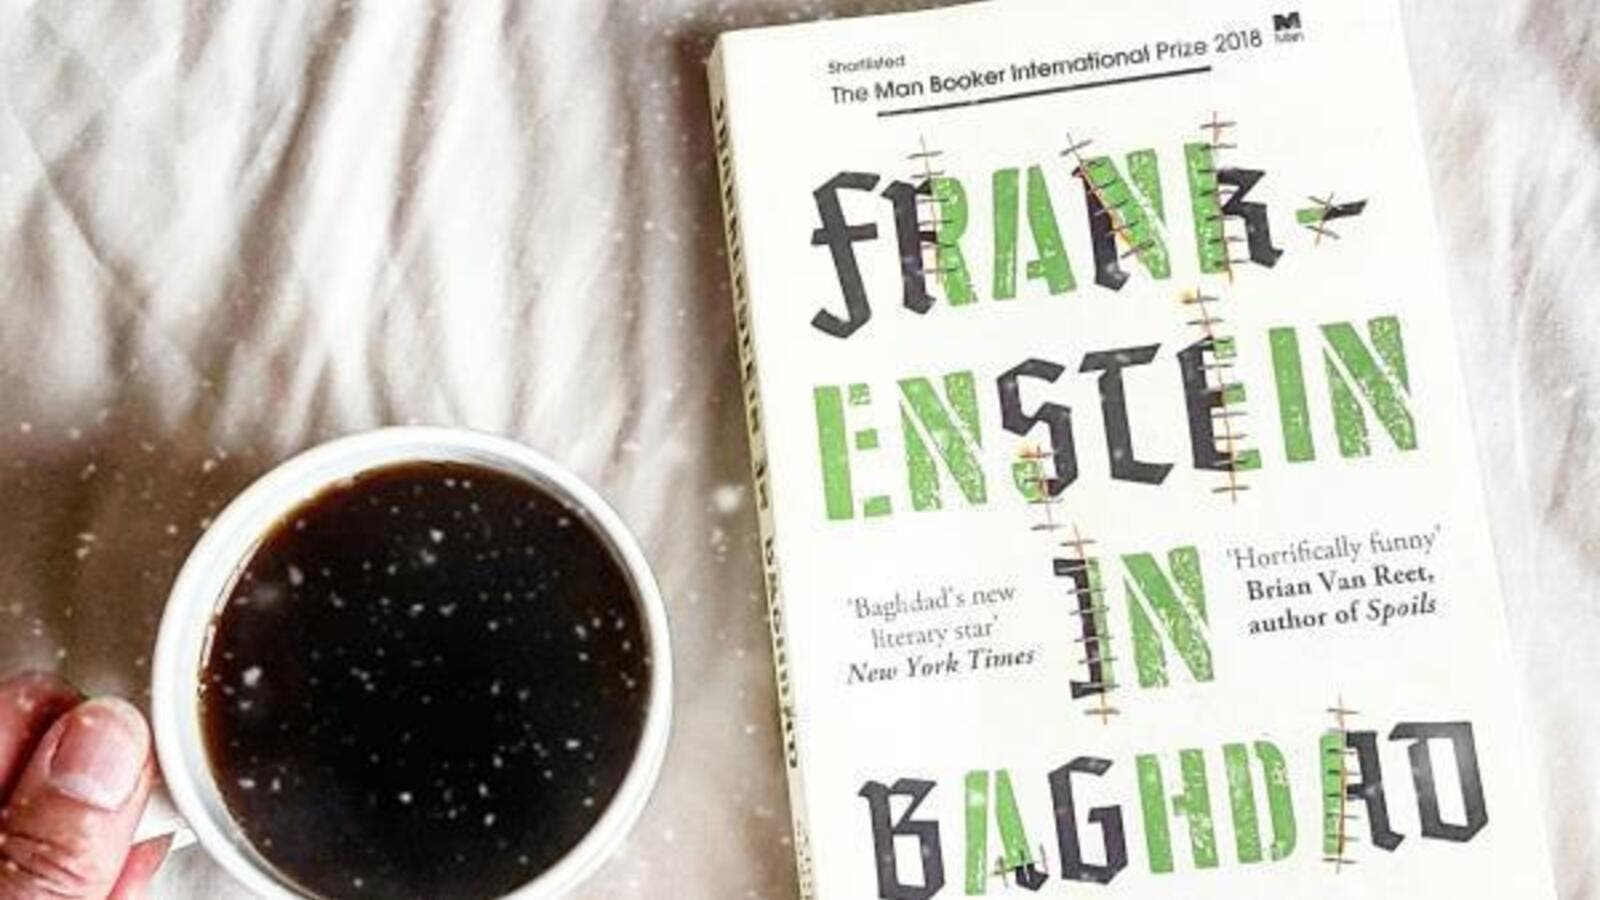 Frankenstein in Baghdad: Capturing the dark reality of war with black humor (Twitter)